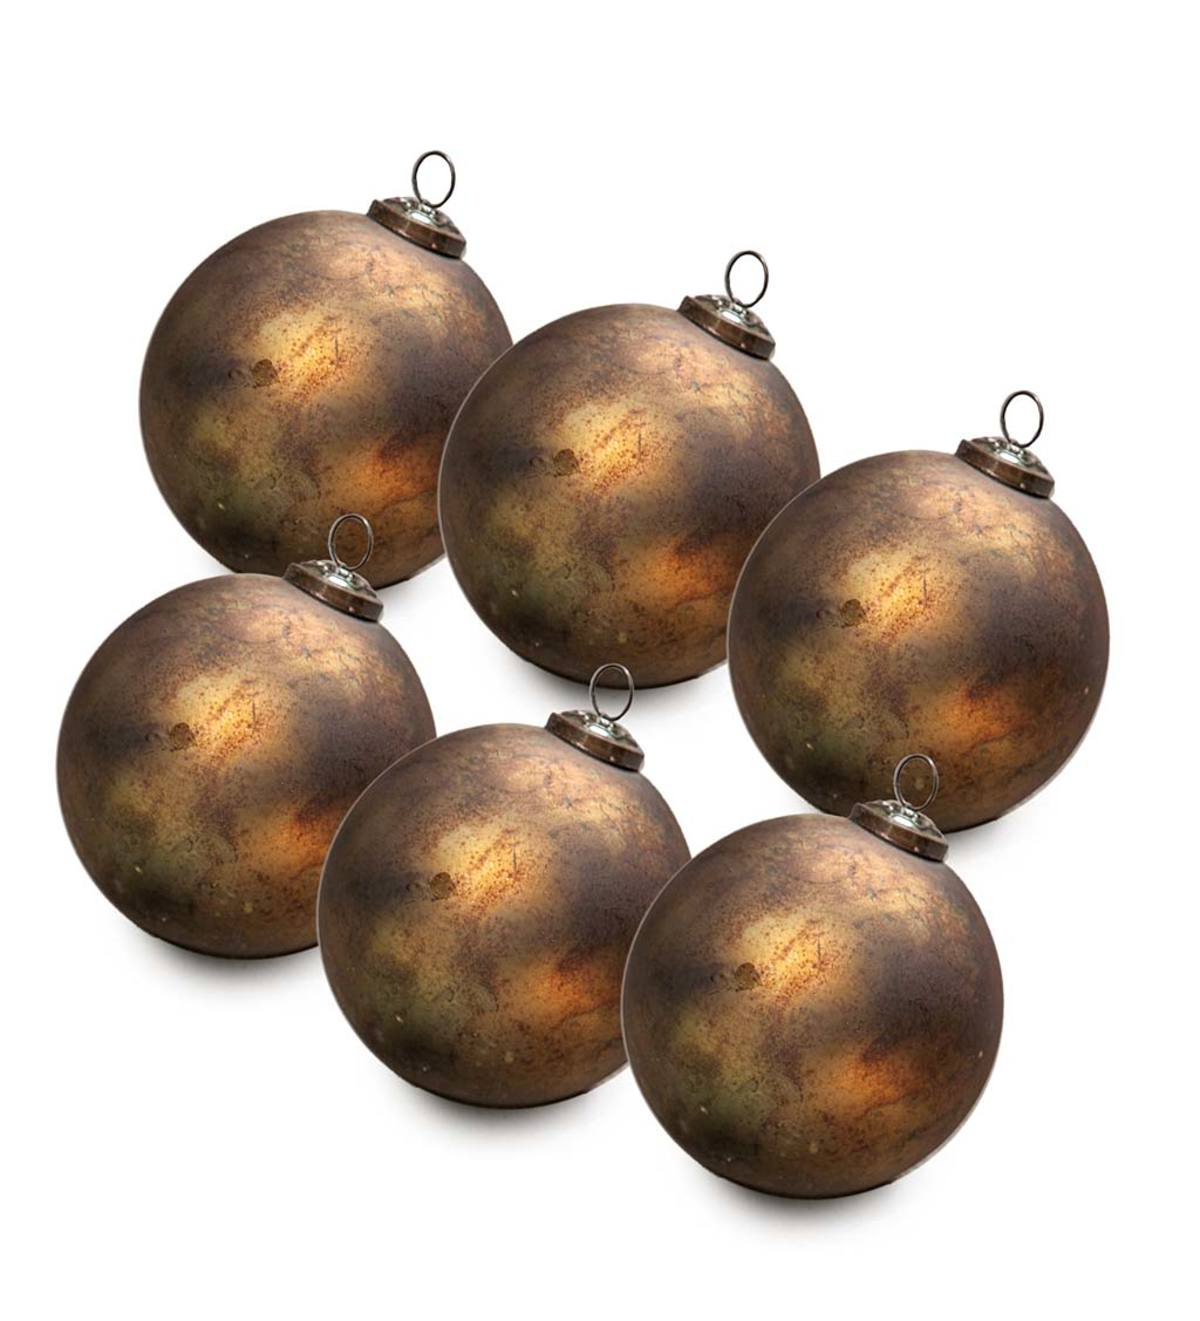 Speckled Mercury Glass Ornaments, set of 6 - Gold